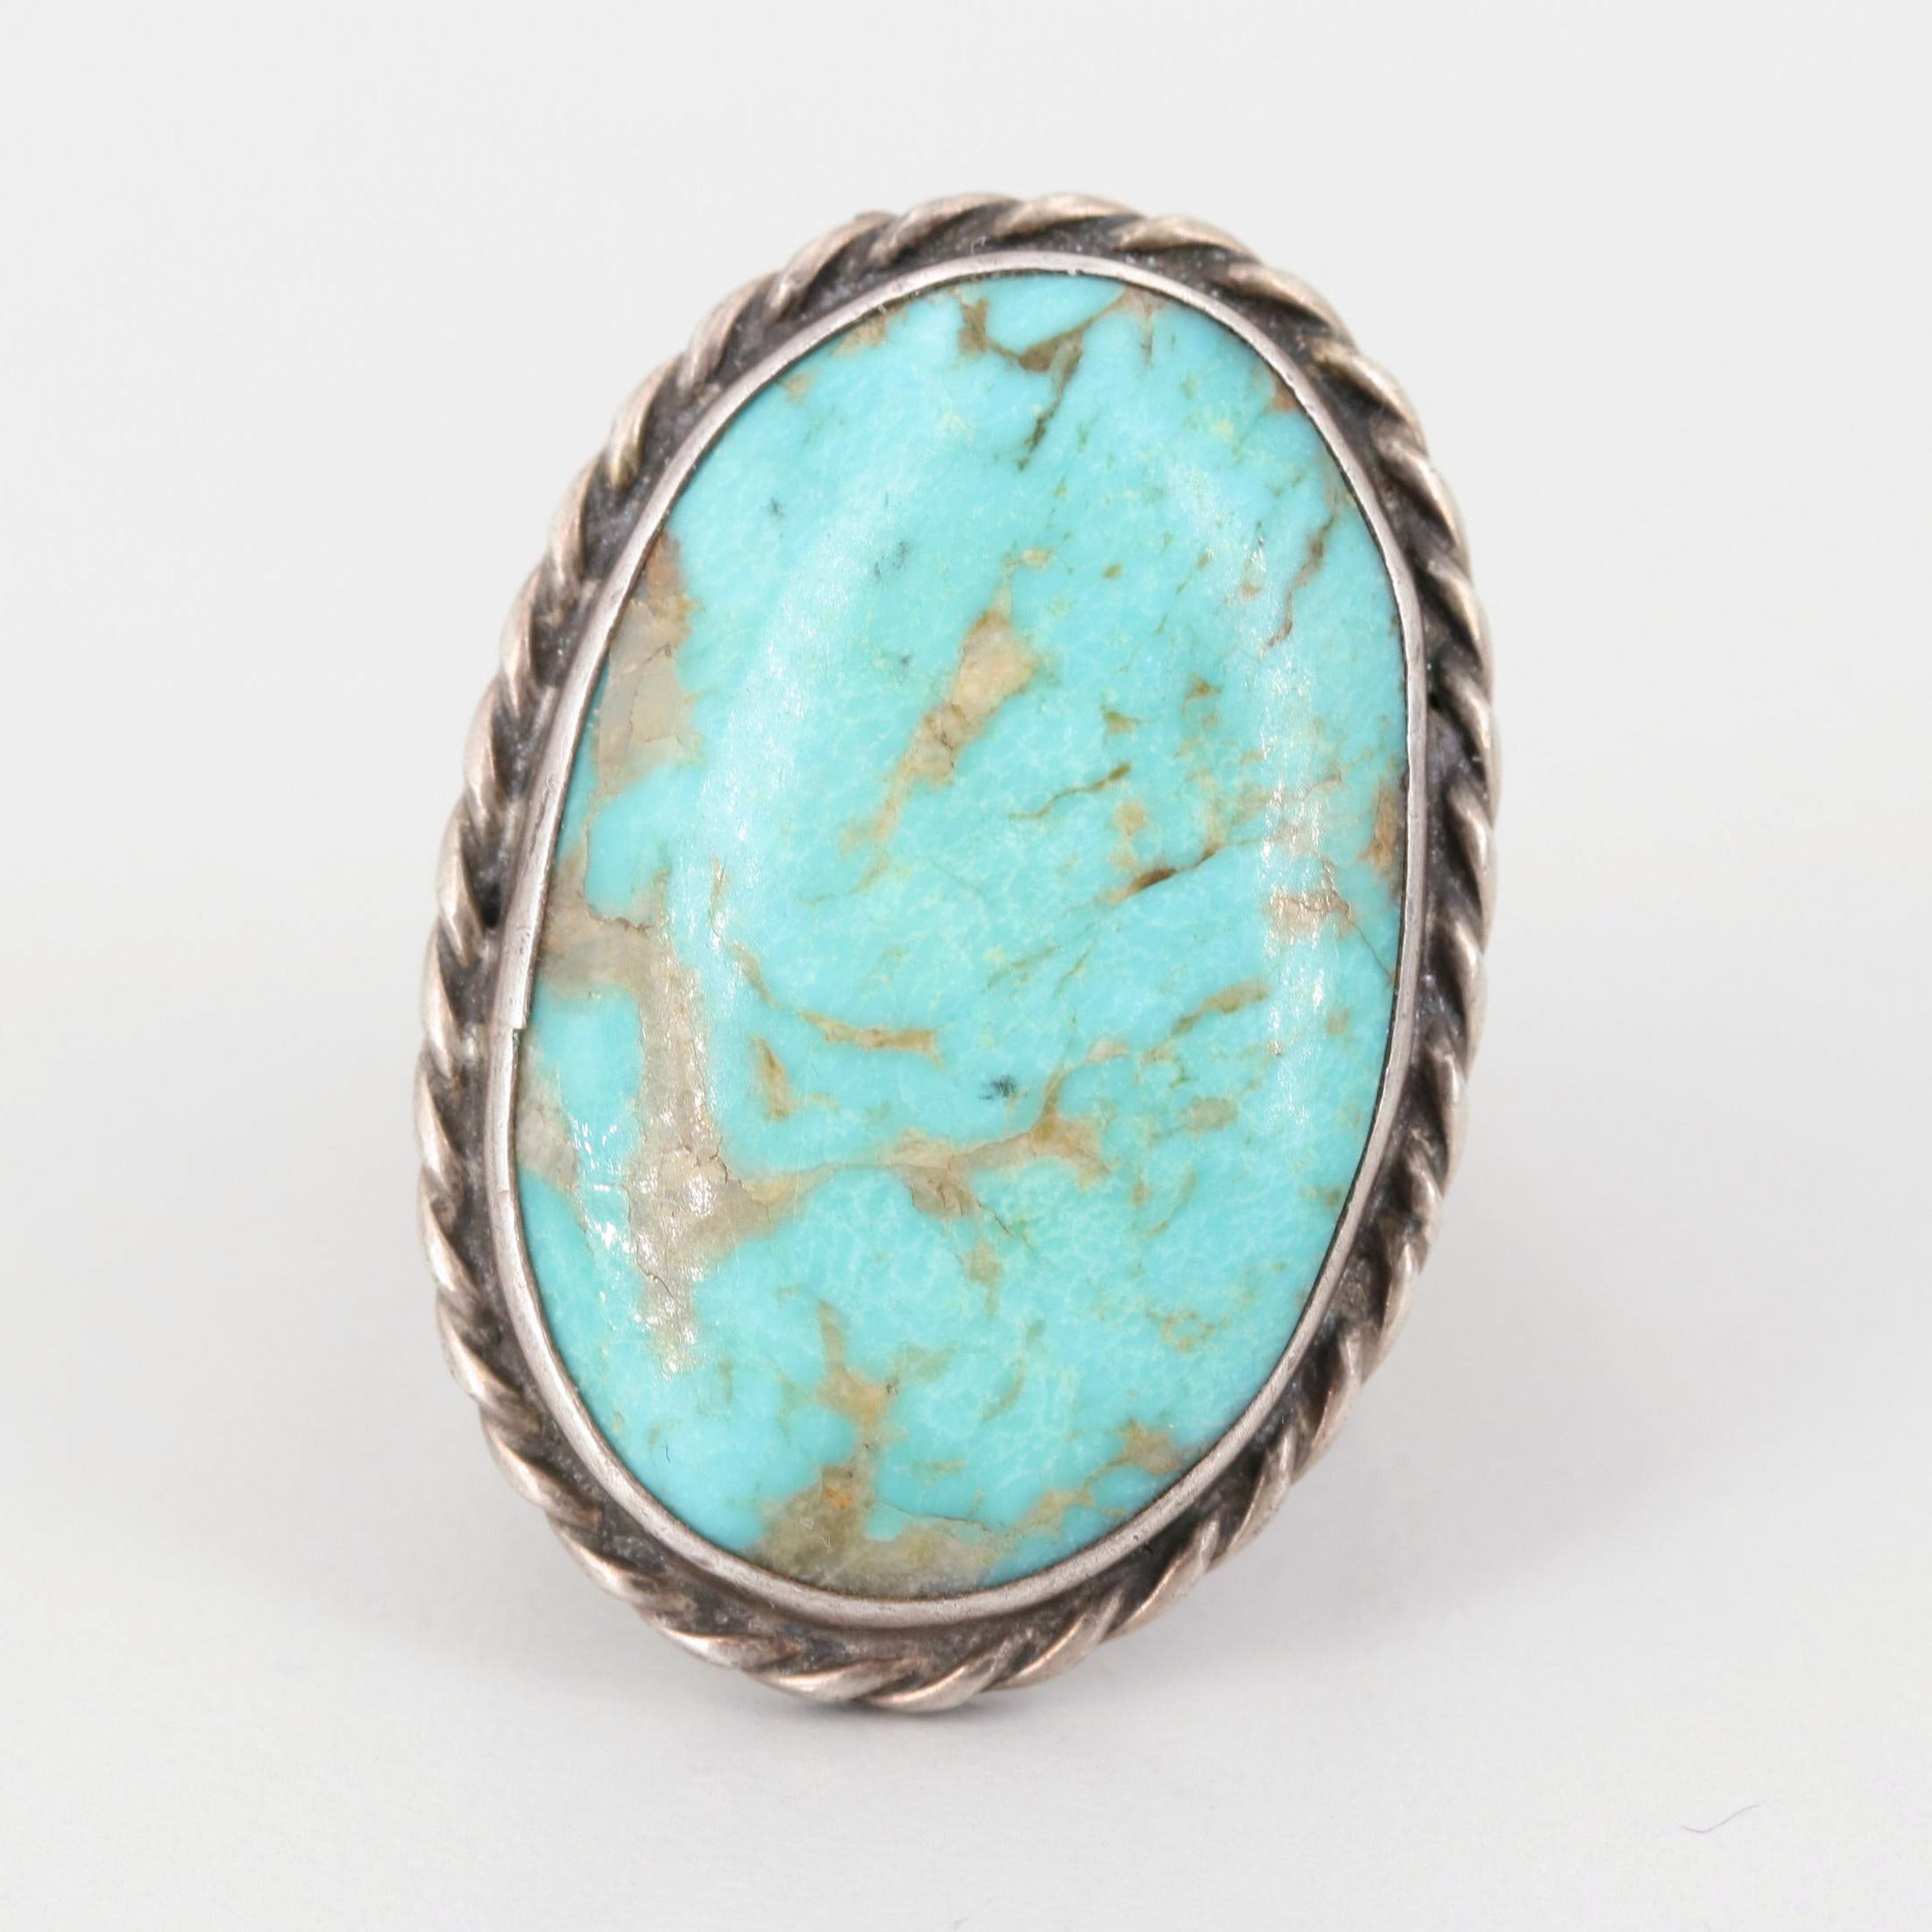 Southwestern Sterling Silver Turquoise Ring with Figural Shank